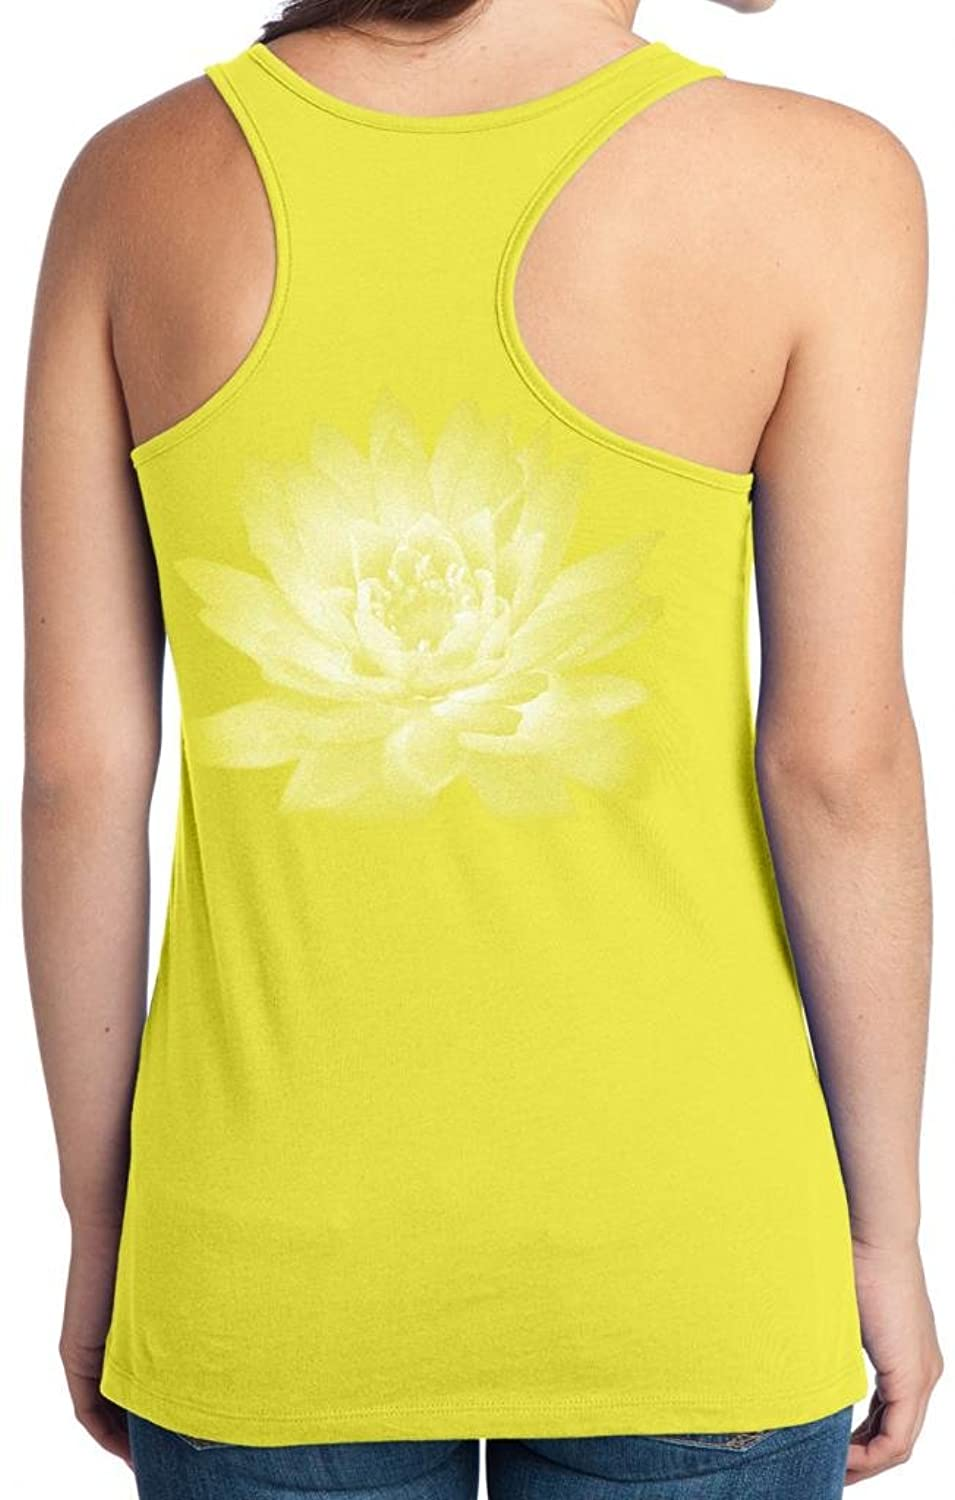 Yoga Clothing For You Juniors Lotus Flower Yellow Tank Top